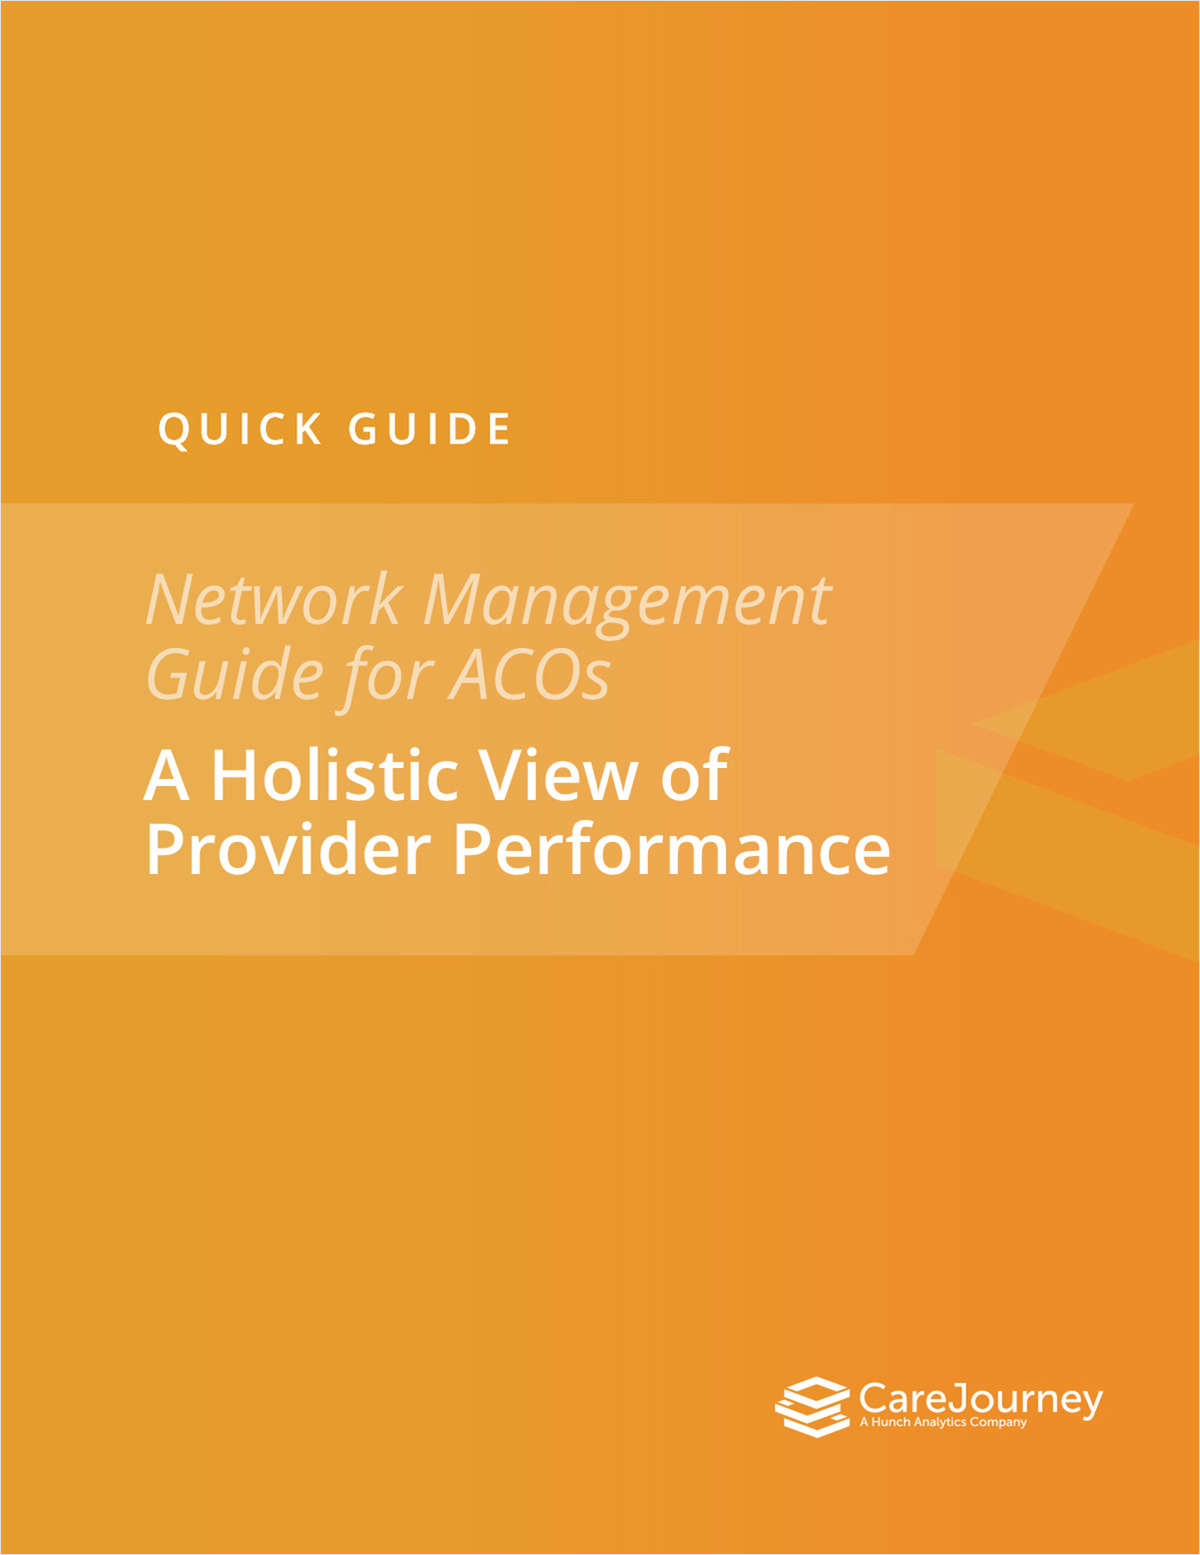 Network Management Guide for ACOs